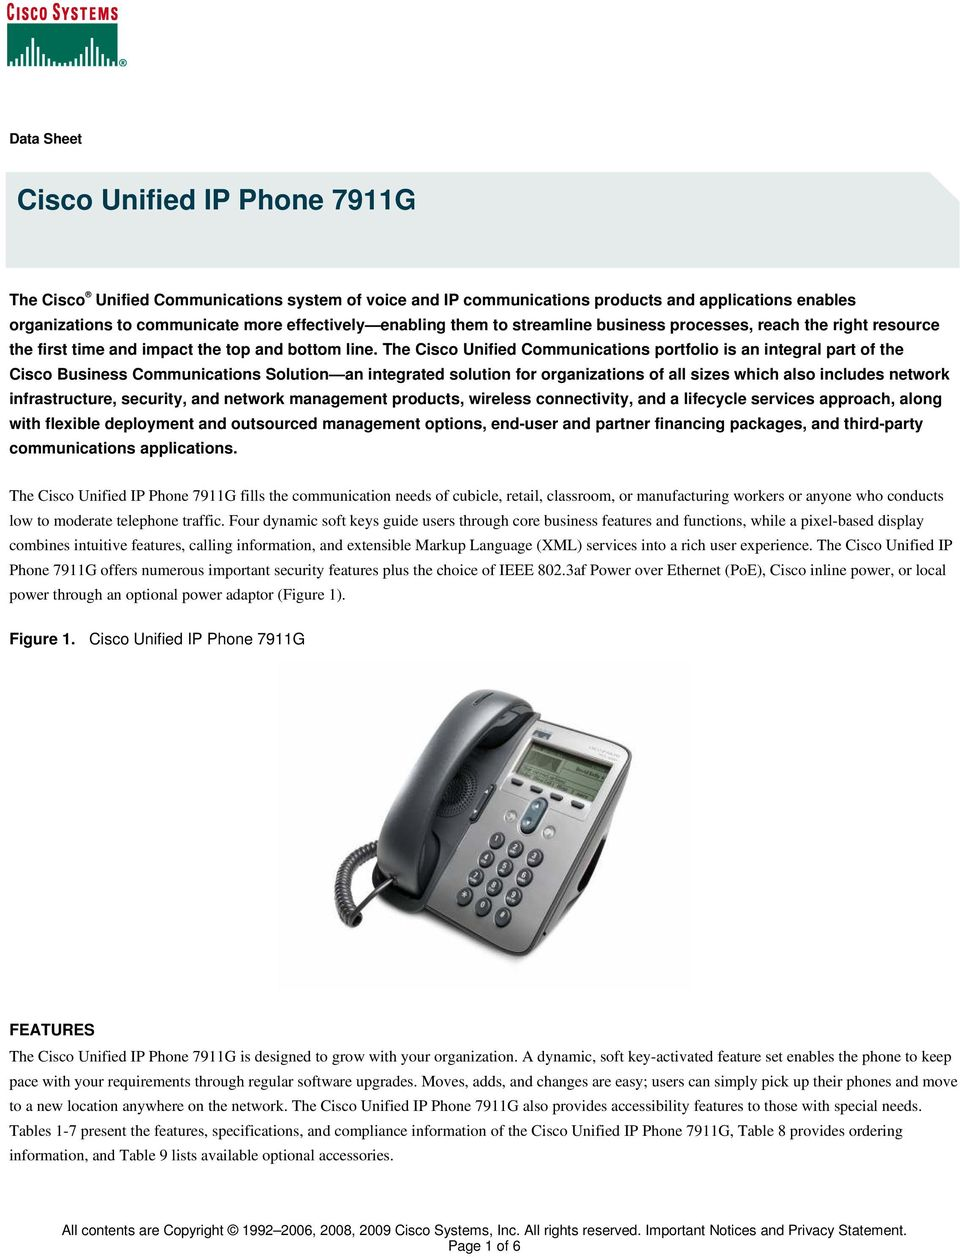 The Cisco Unified Communications portfolio is an integral part of the Cisco Business Communications Solution an integrated solution for organizations of all sizes which also includes network